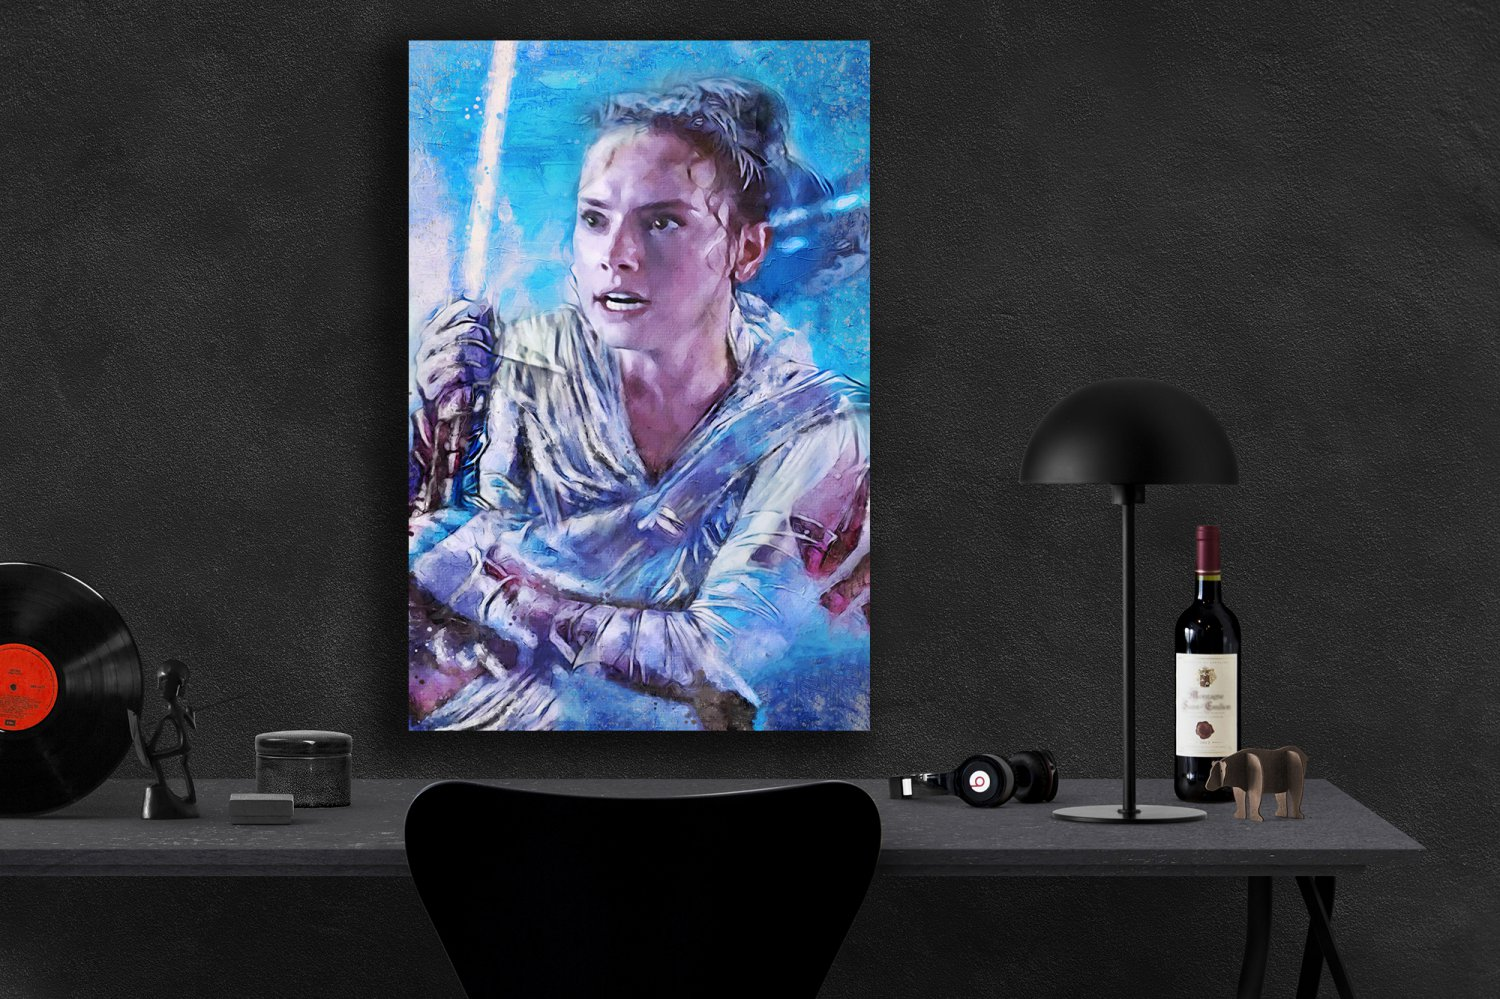 Star Wars The Rise of Skywalker, Rey, Daisy Ridley  8x12 inches Photo Paper